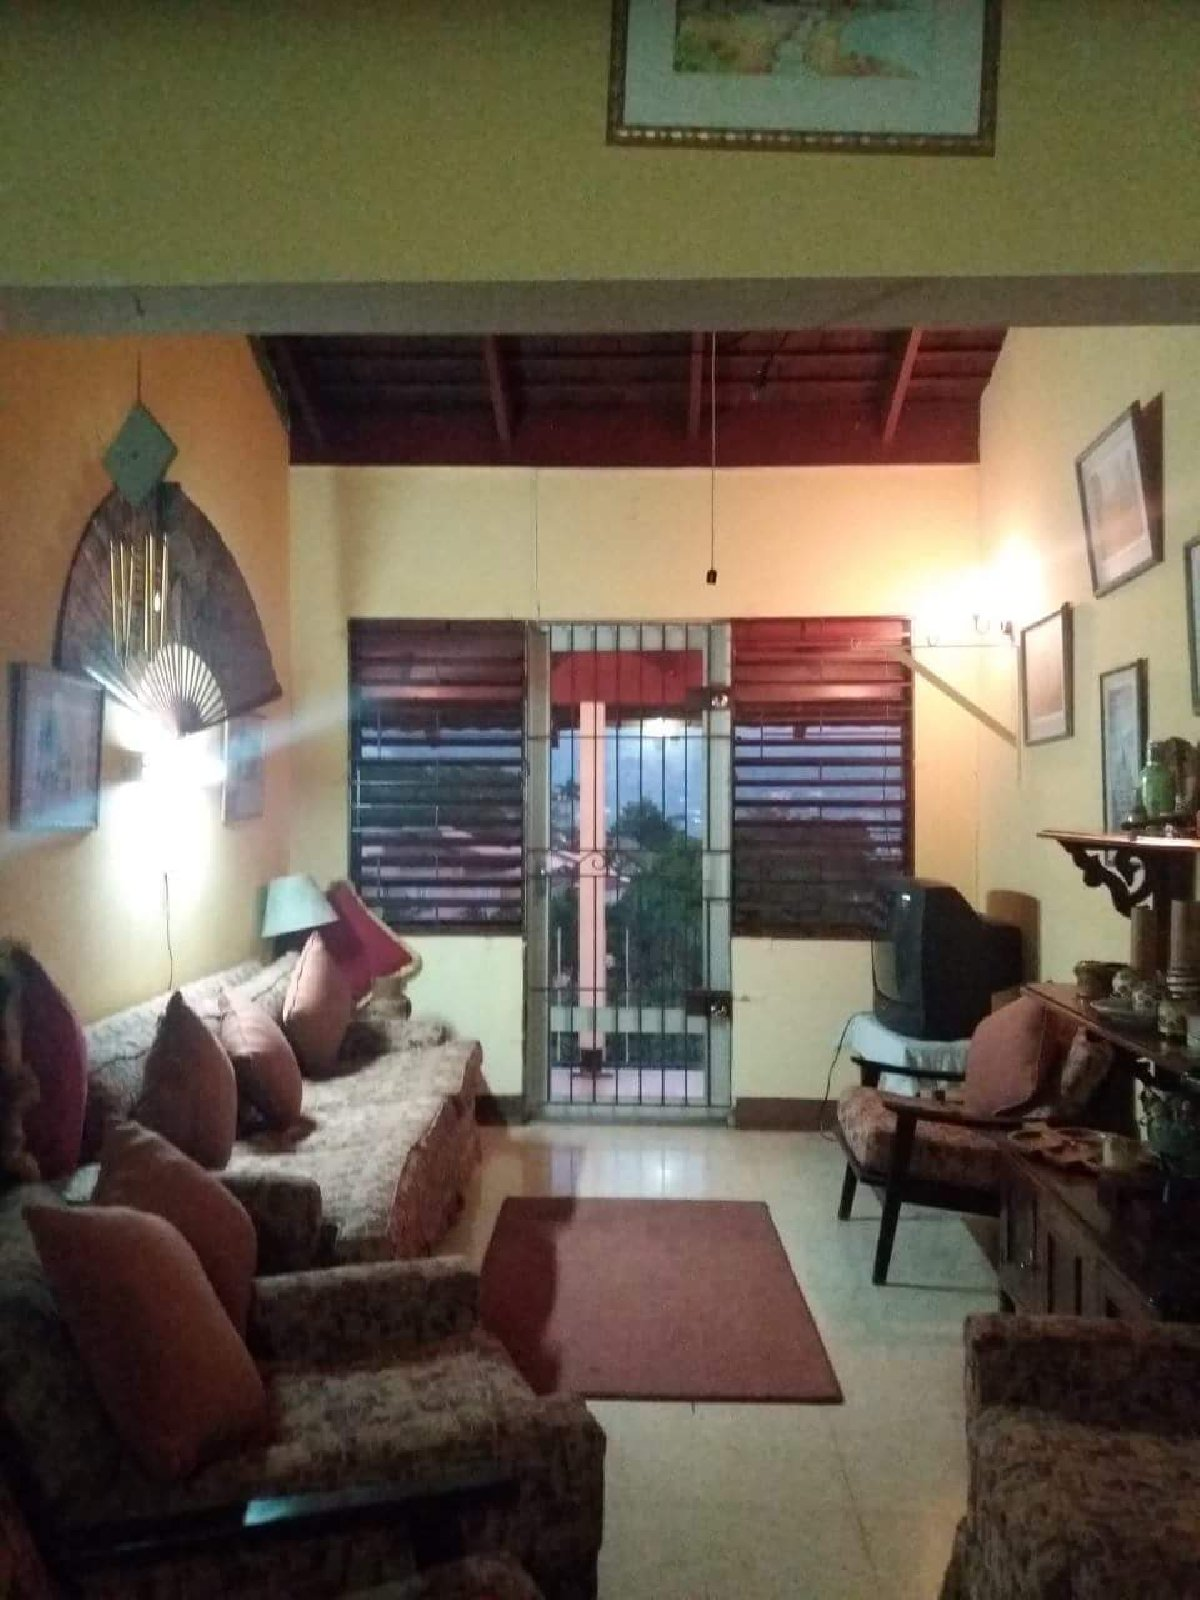 Furnished 1 Bedroom Apartment For Rent In Mandeville: 4 Bedroom 4 1/2 Bathroom Fully Furnished For Rent In East